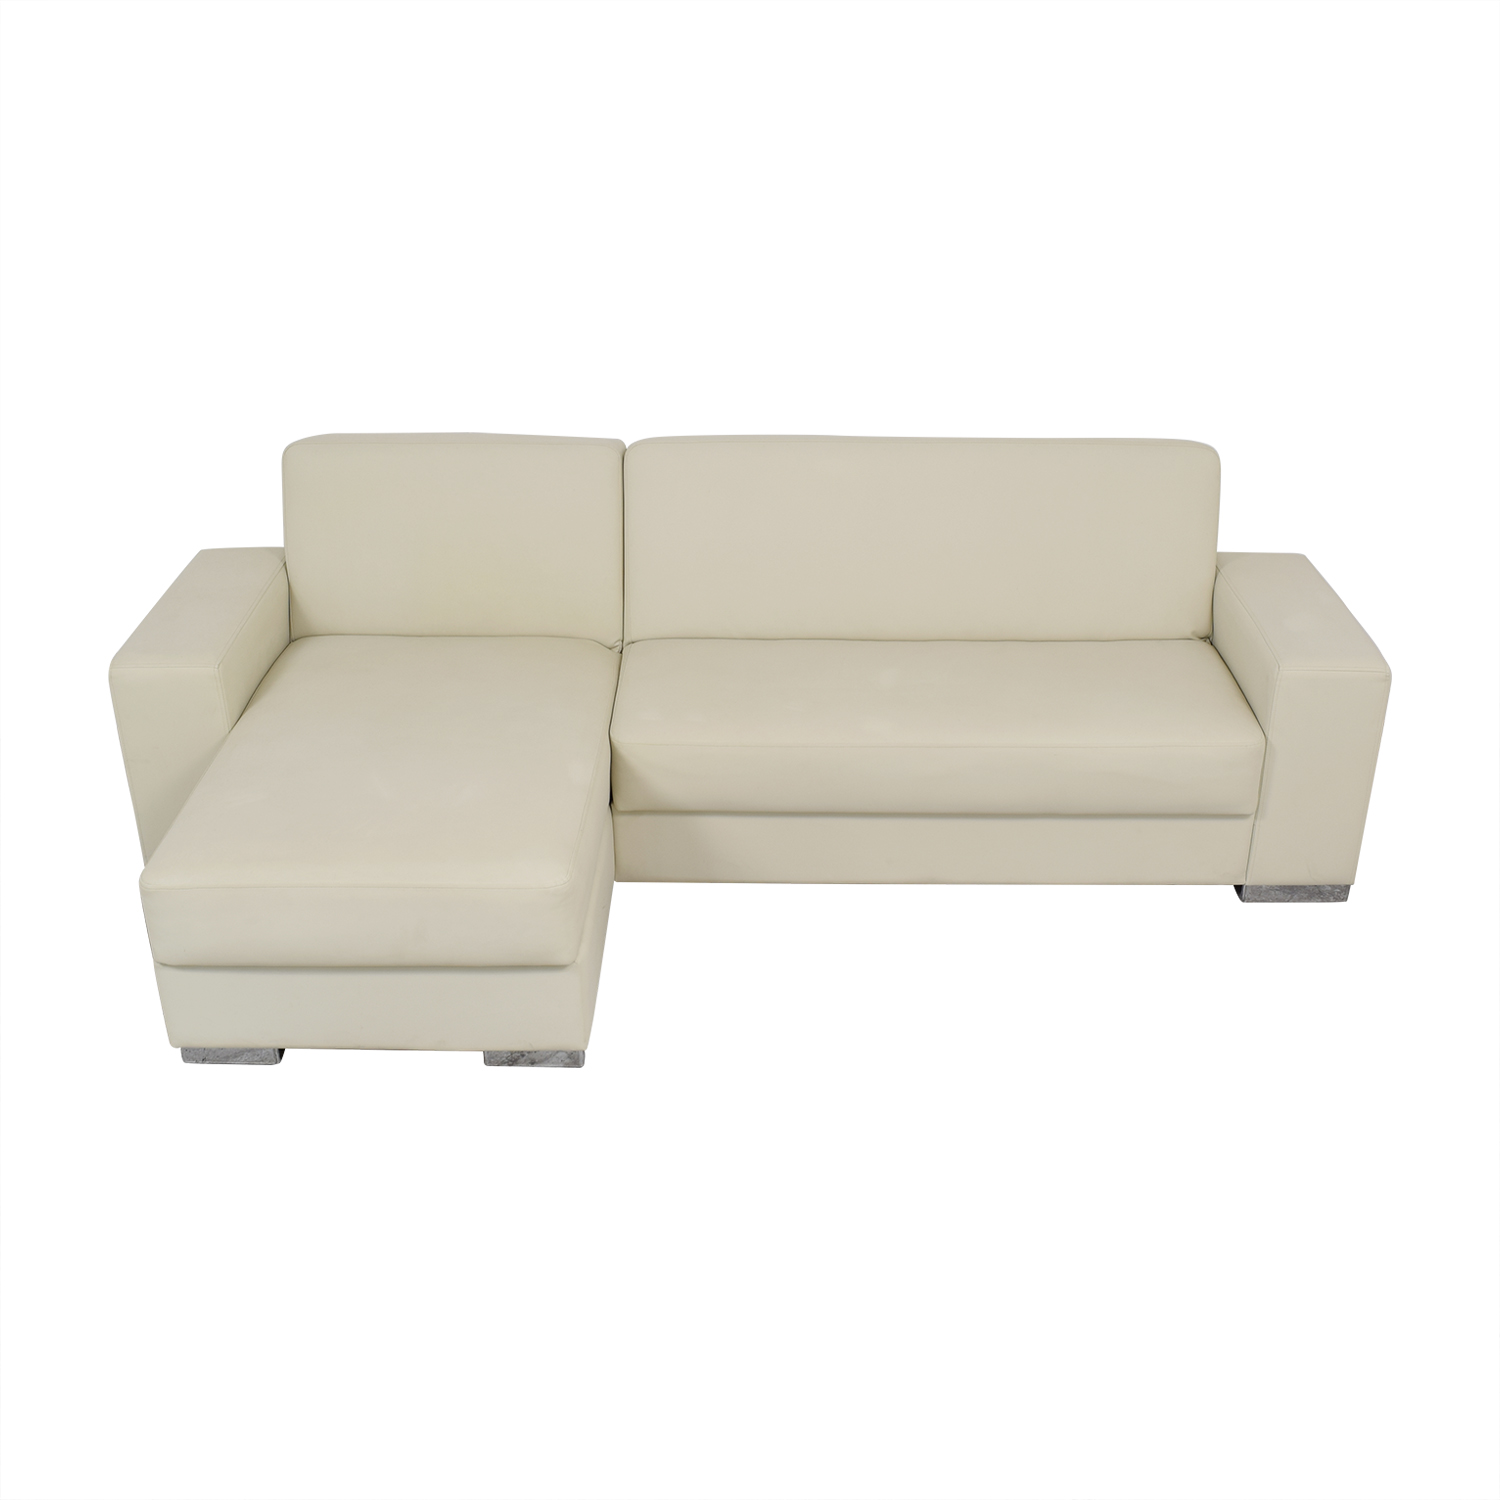 Hudson Furniture Kobe Sectional Sofa Bed with Storage sale